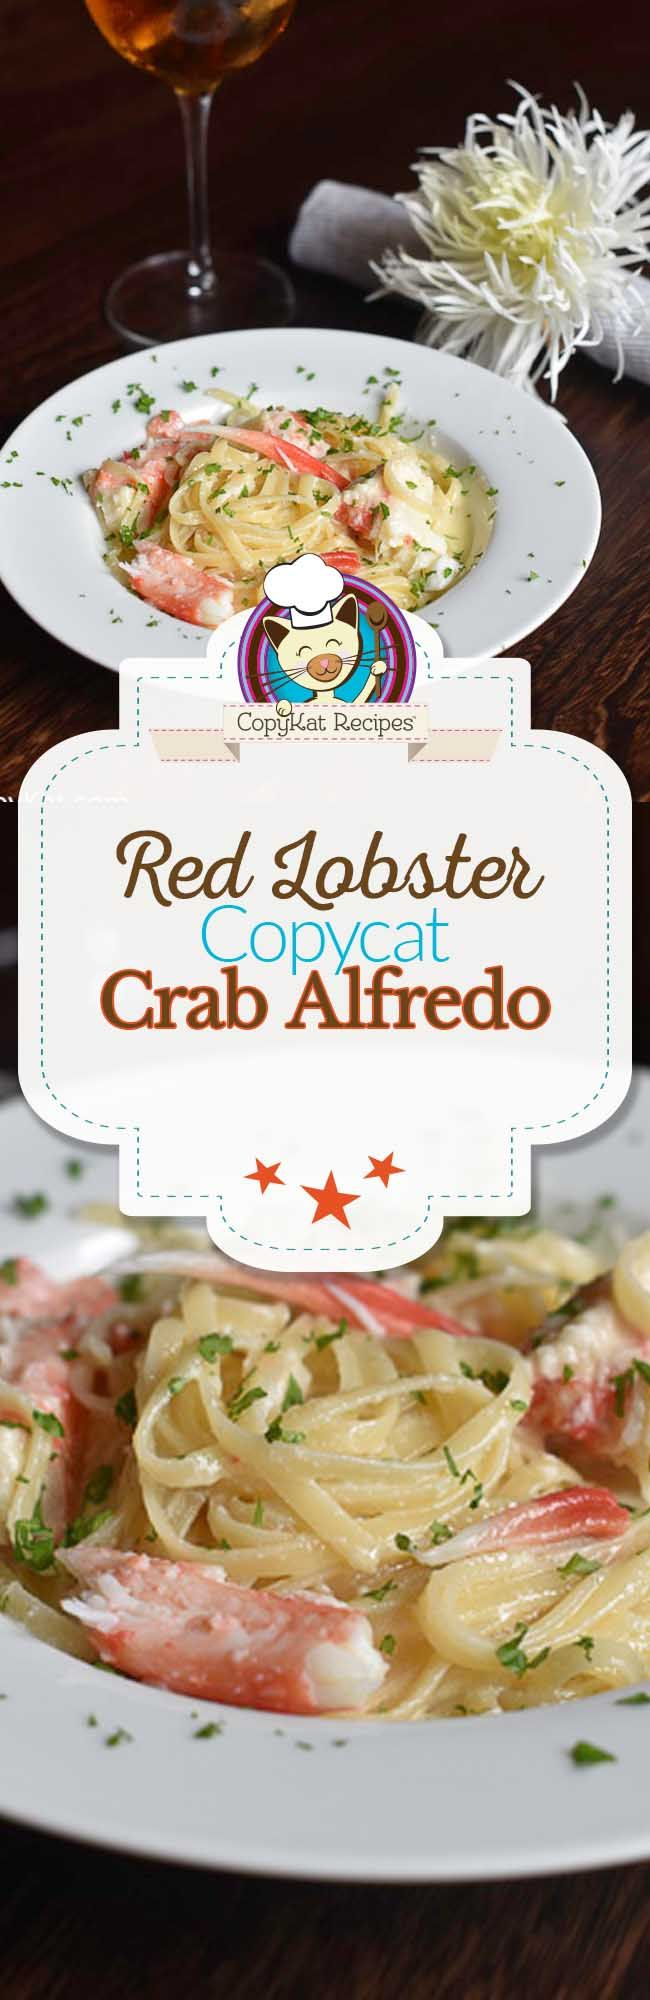 You can recreate the Red Lobster Crab Alfredo from scratch with this easy copycat recipe.